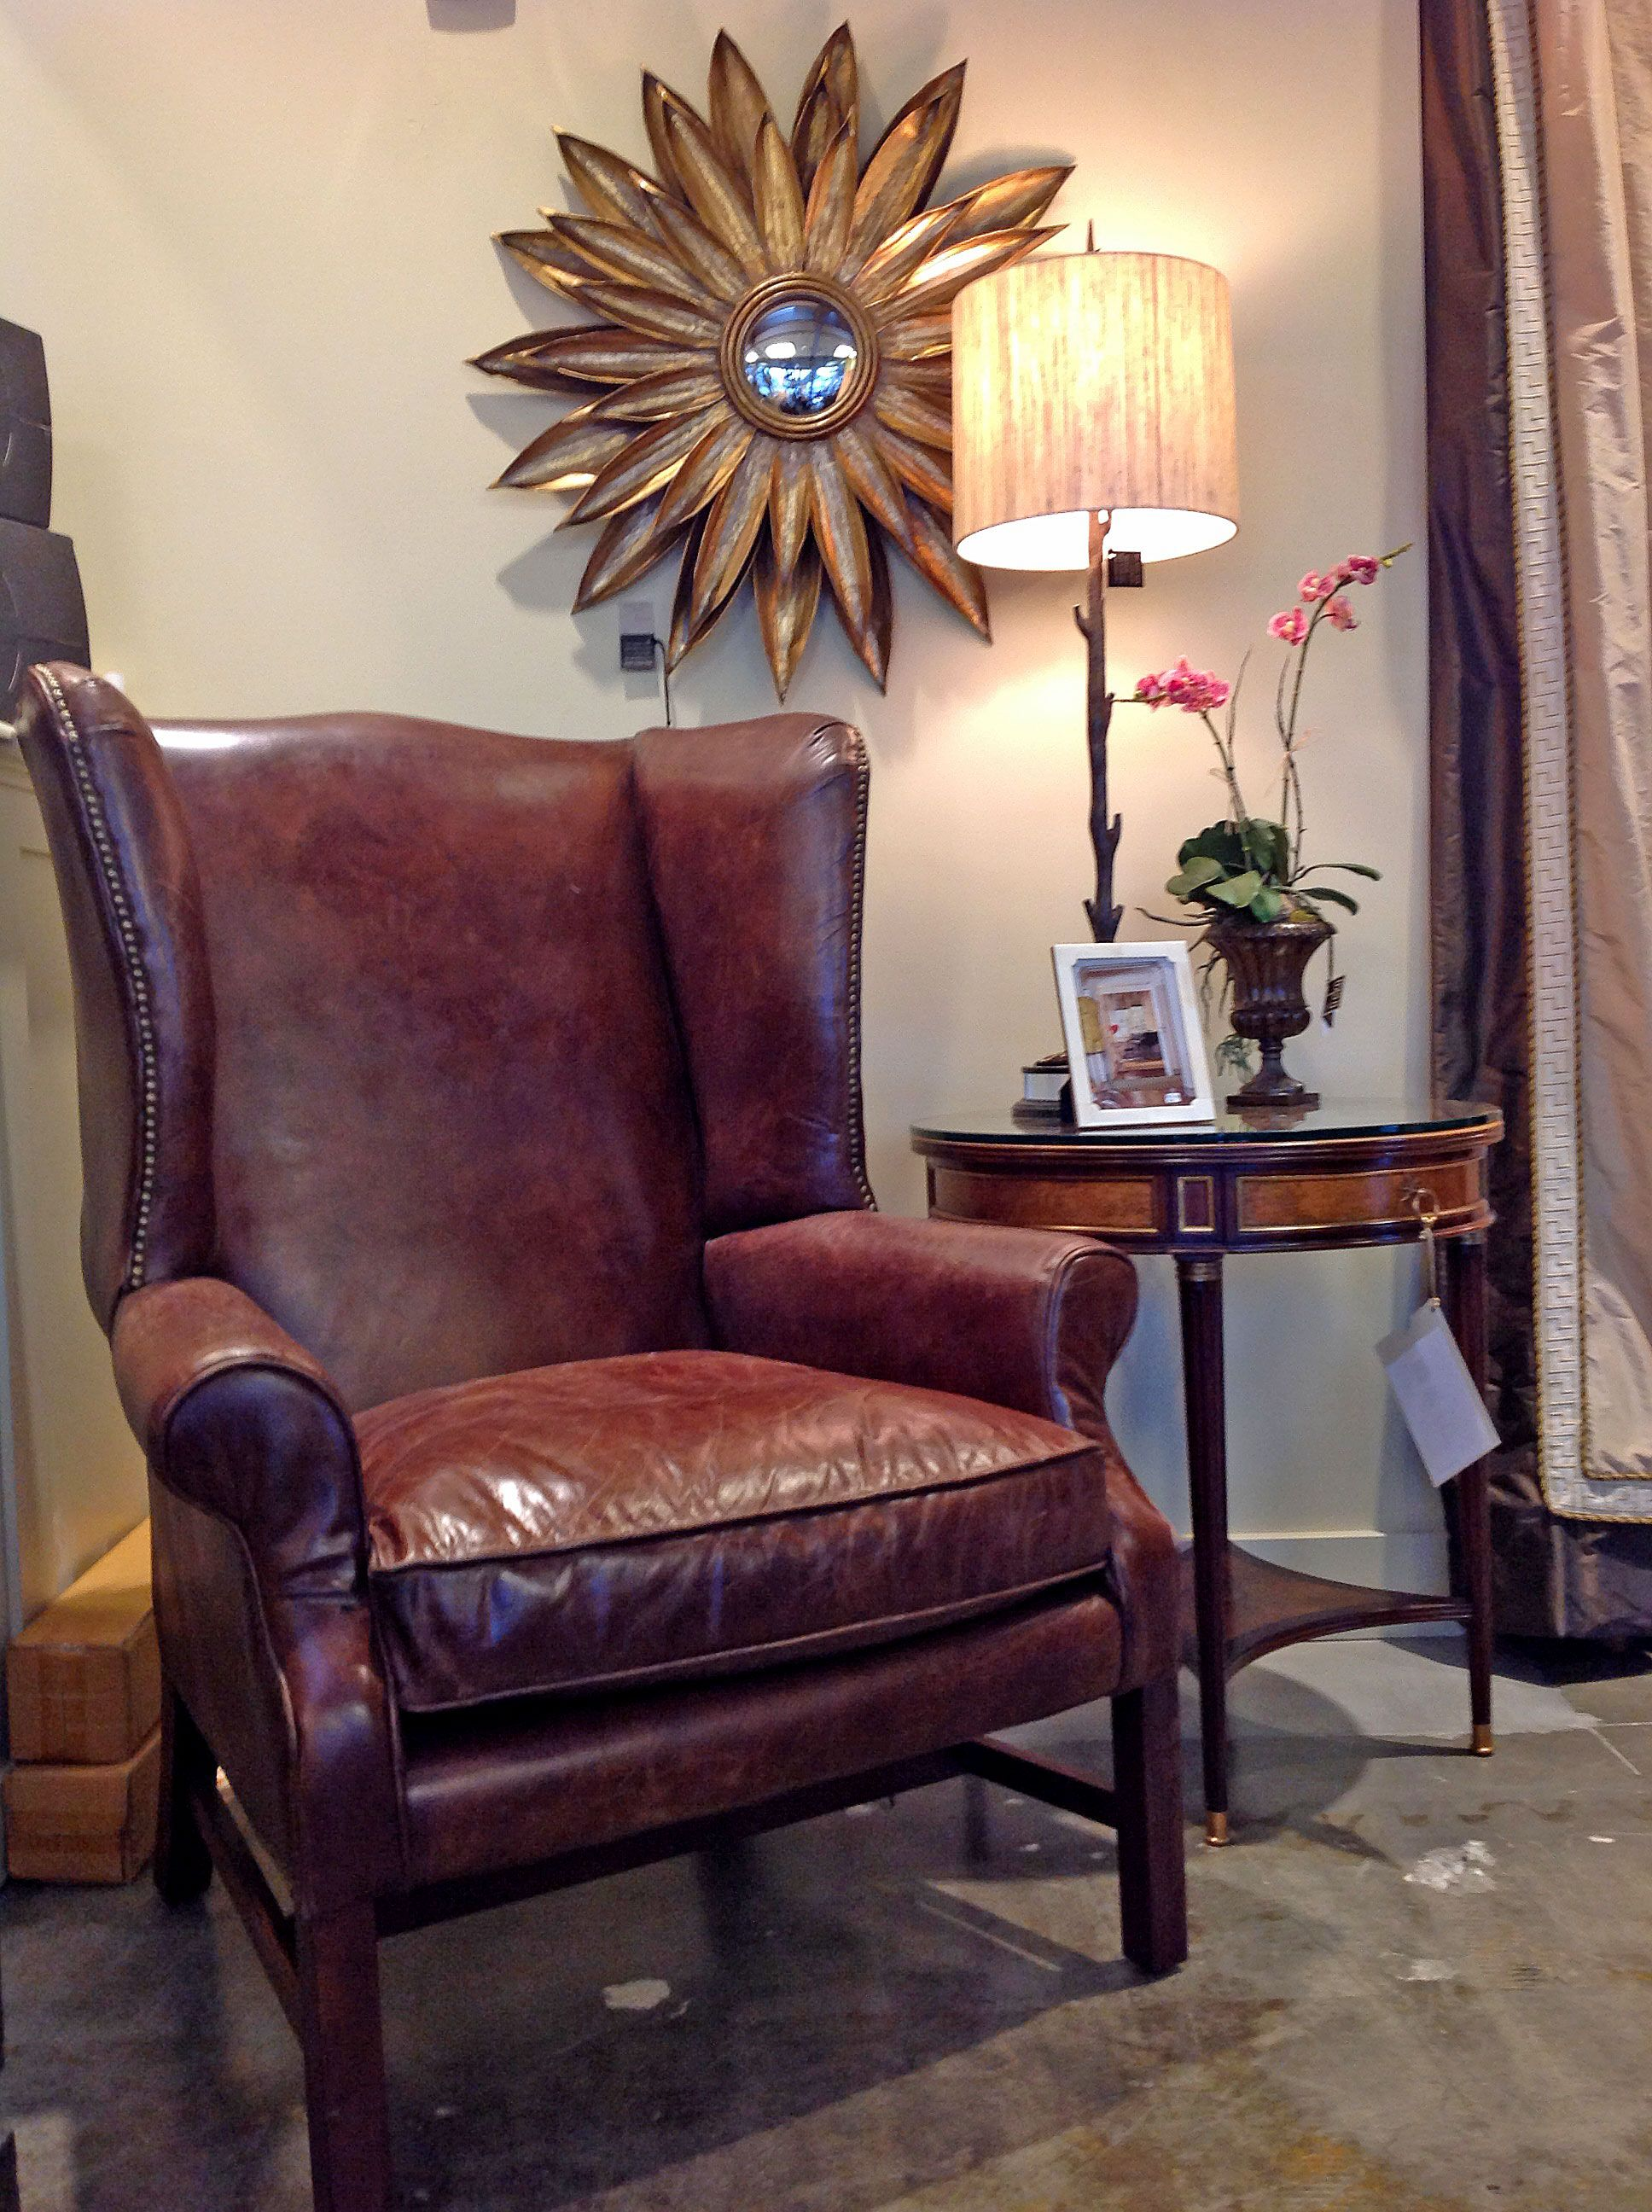 Leather wing chair arranged with small round side table and lamp leather wing chair arranged with small round side table and lamp gold trimmed round sunburst geotapseo Choice Image